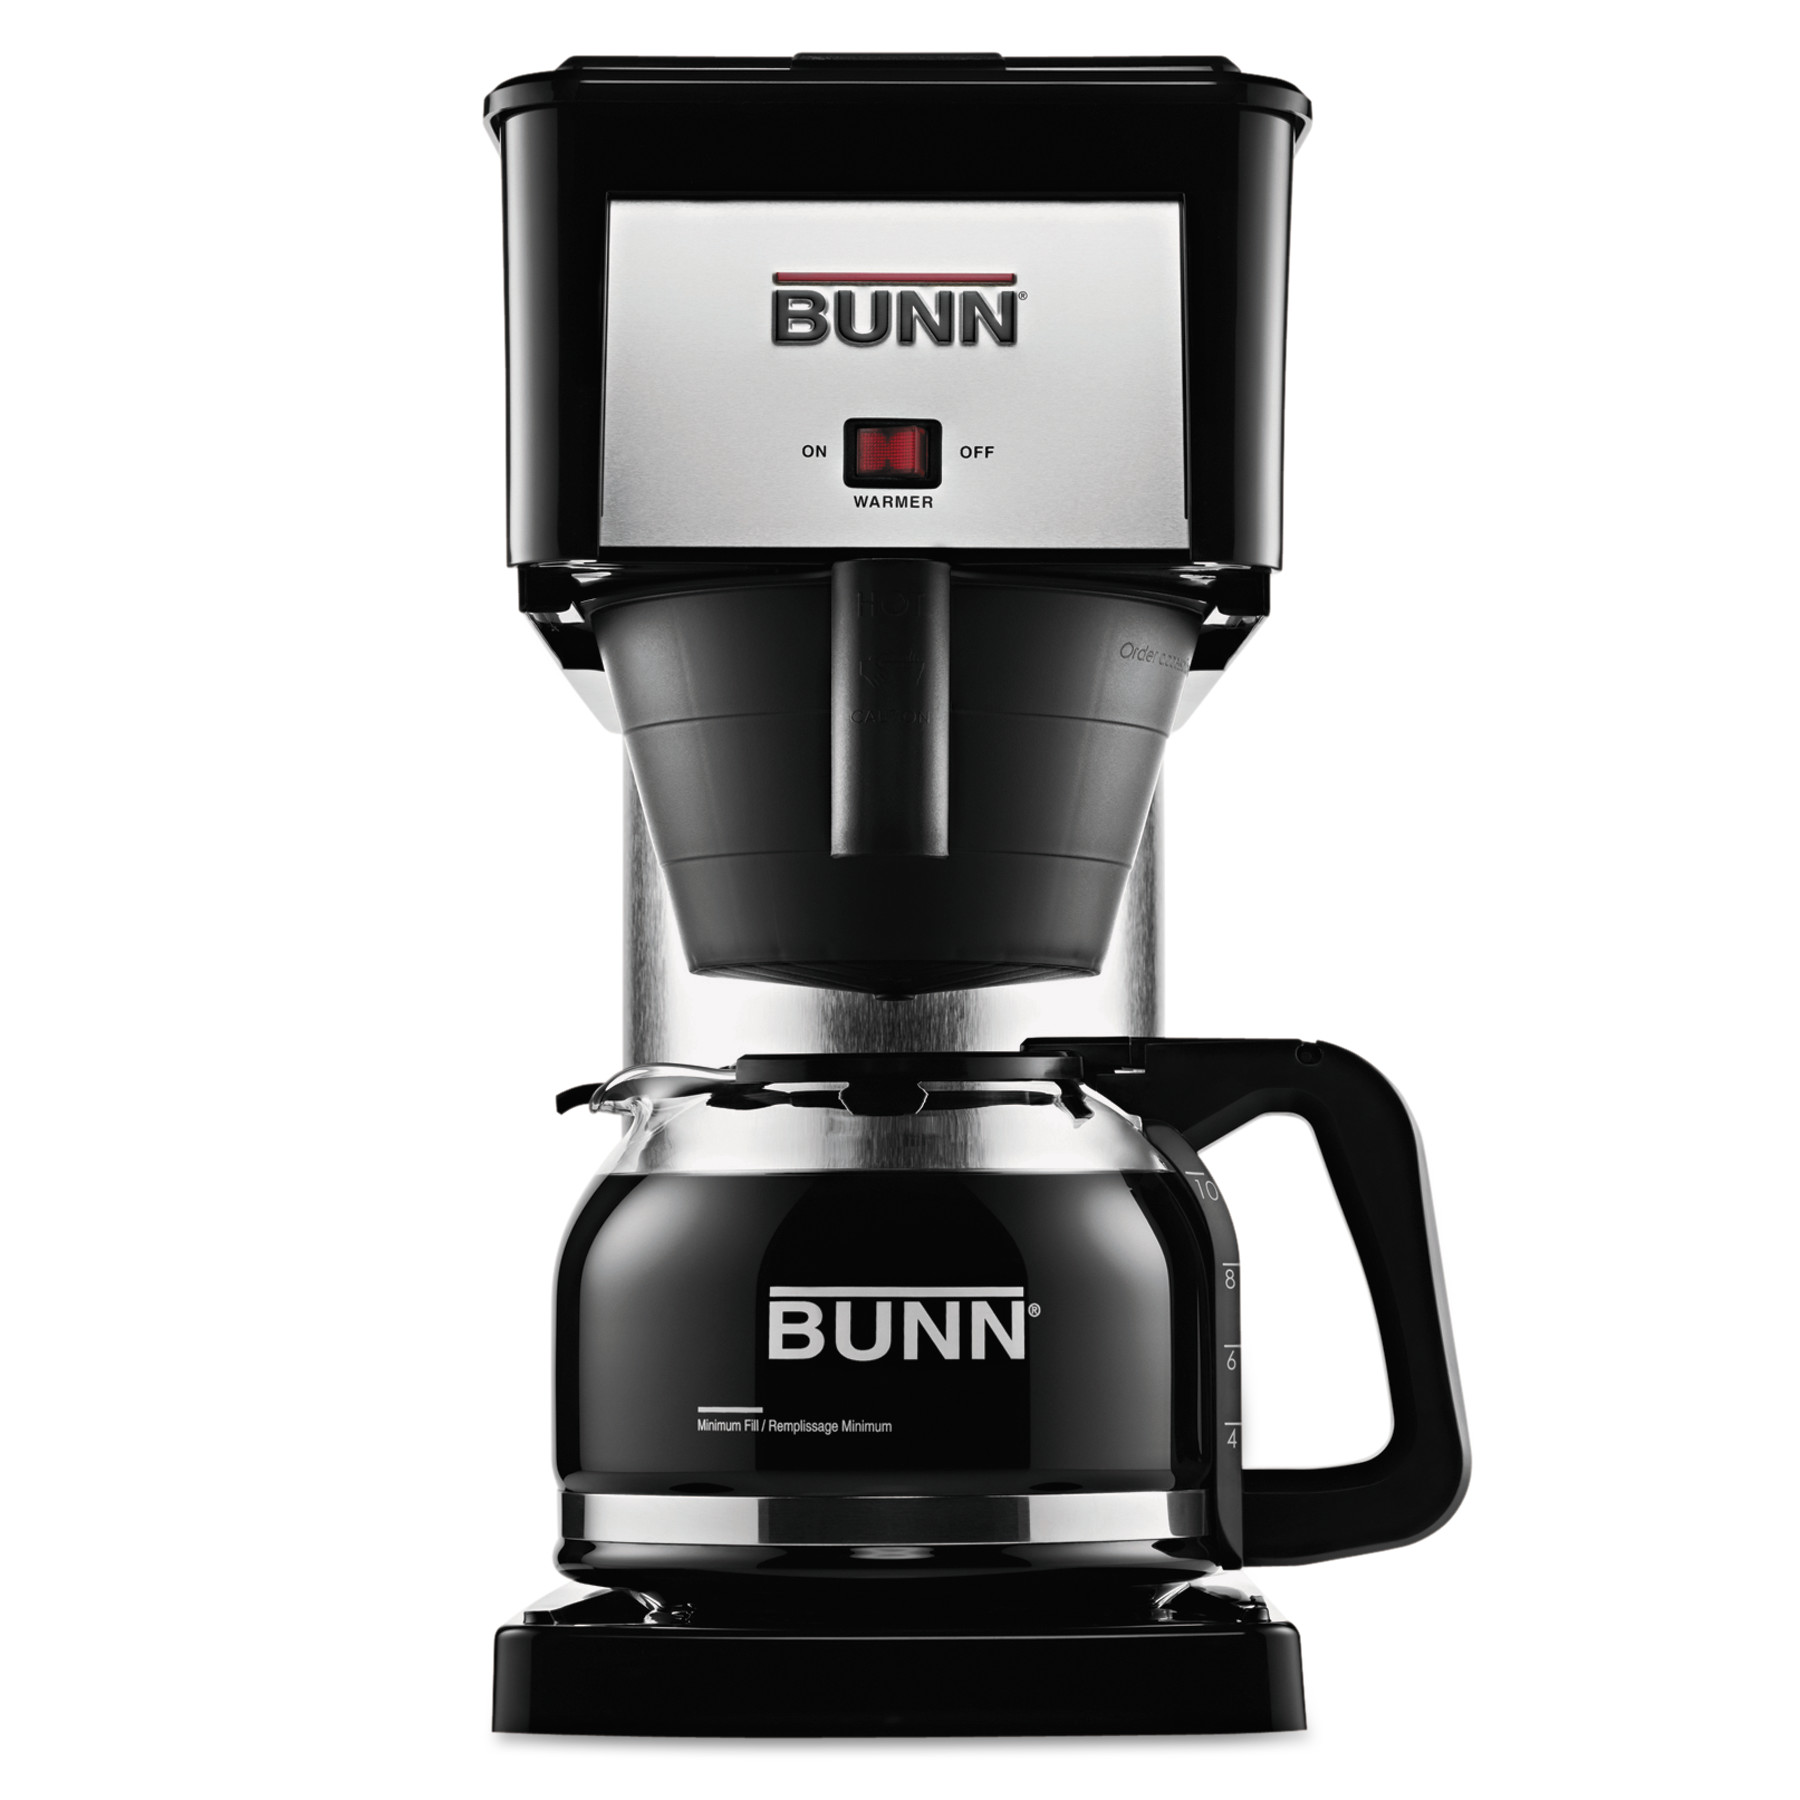 BUNN 10-Cup Velocity Brew BX Coffee Brewer, Black, Stainless Steel